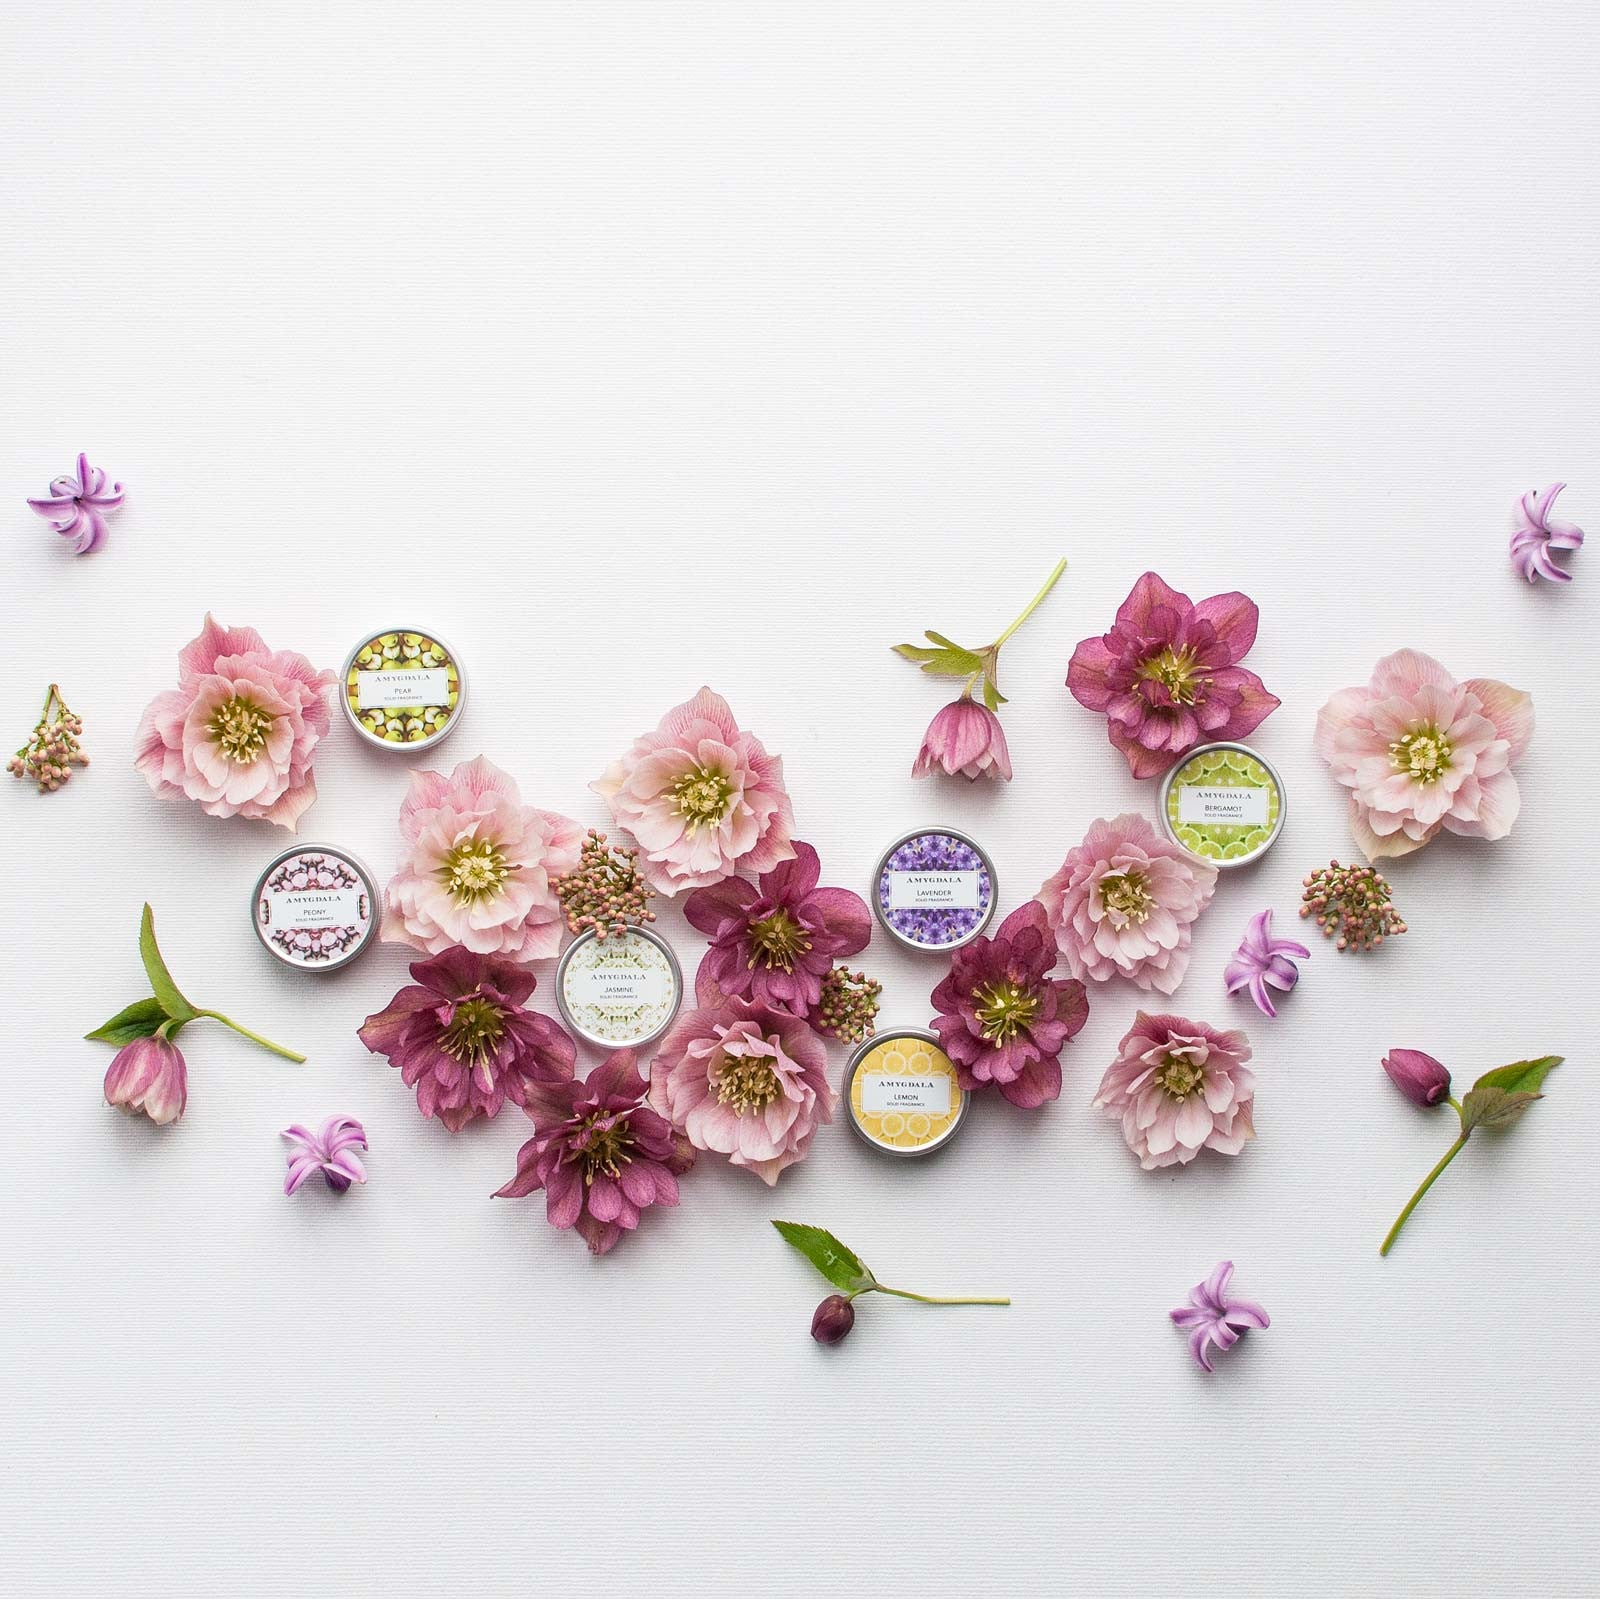 Solid perfumes spring flowers